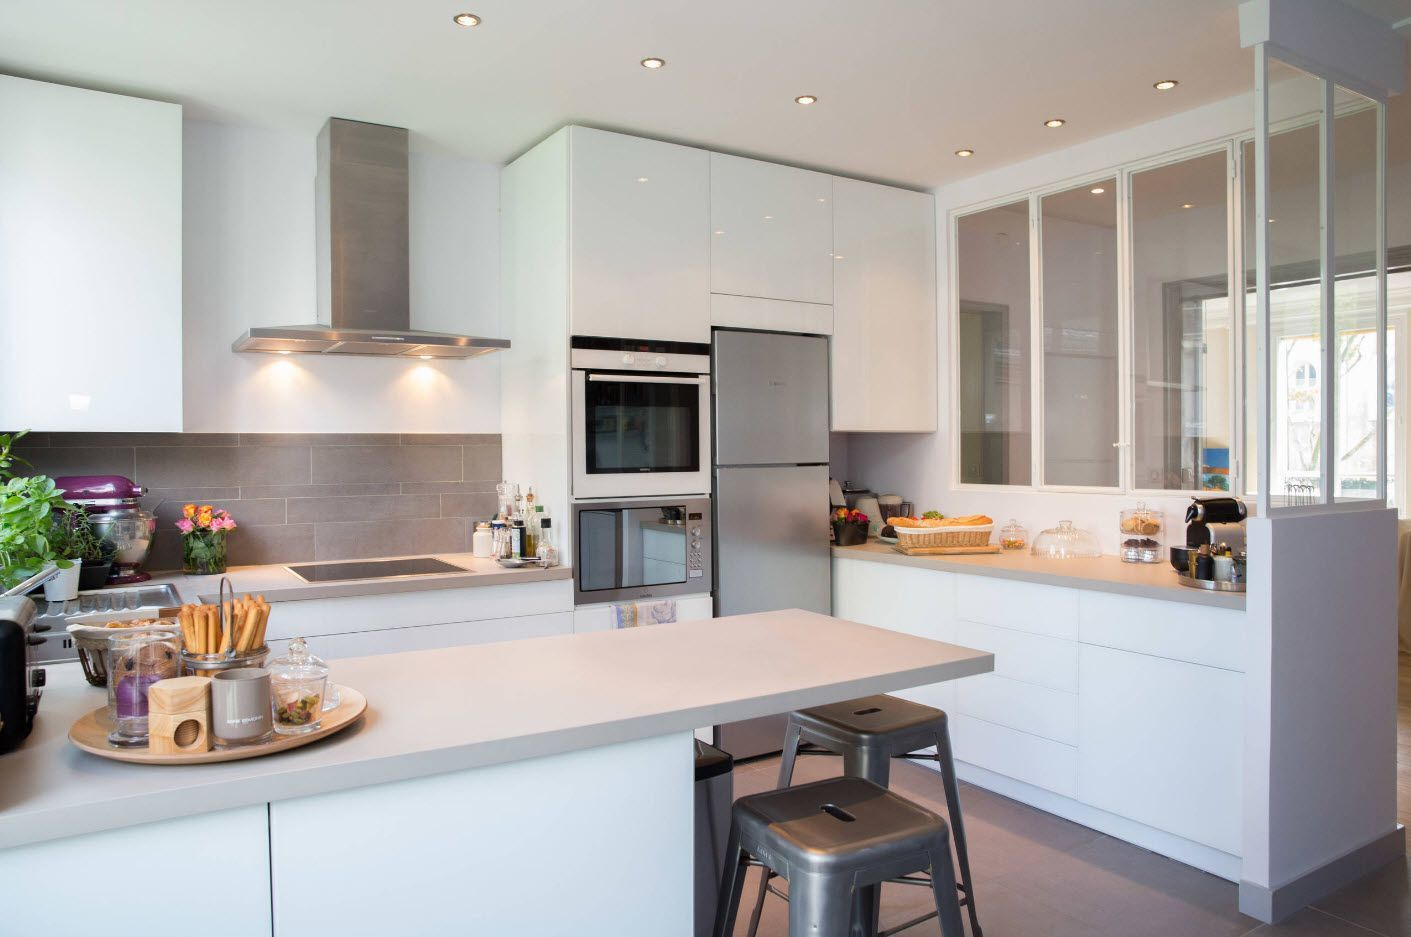 Kitchen Fashion Trends & Interior Design Ideas 2017. Succesfully combined white and steel surfaces